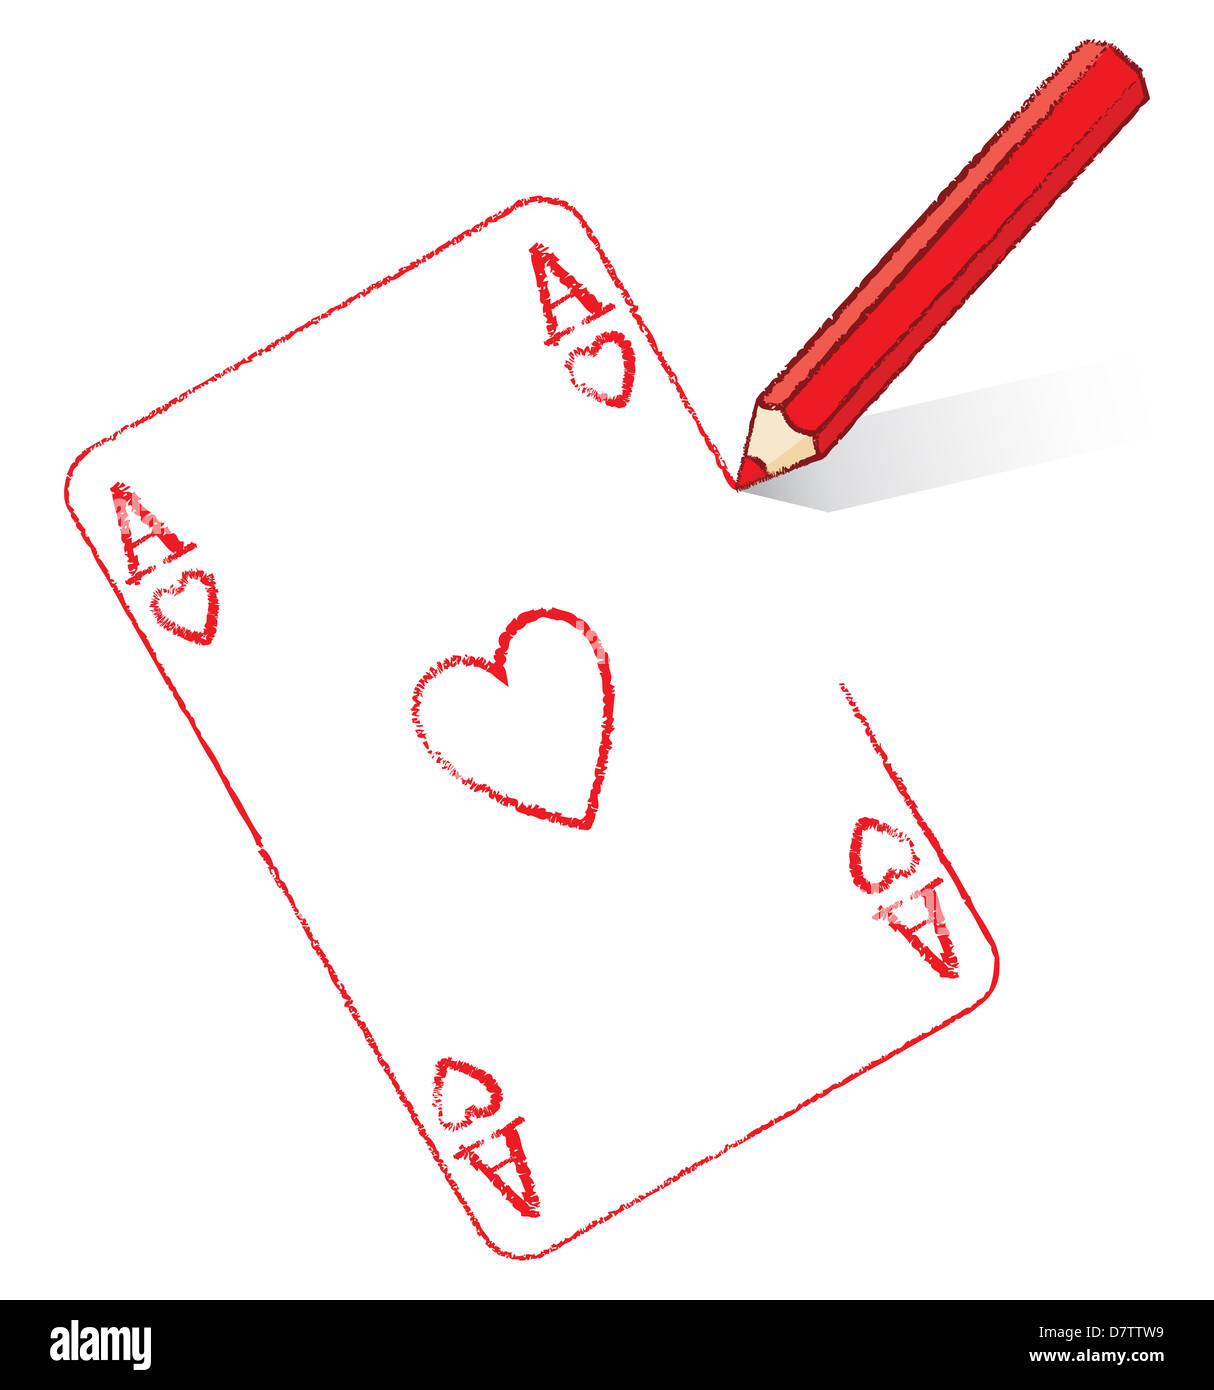 Red Pencil Drawing Ace of Hearts Playing Cards Stock Photo